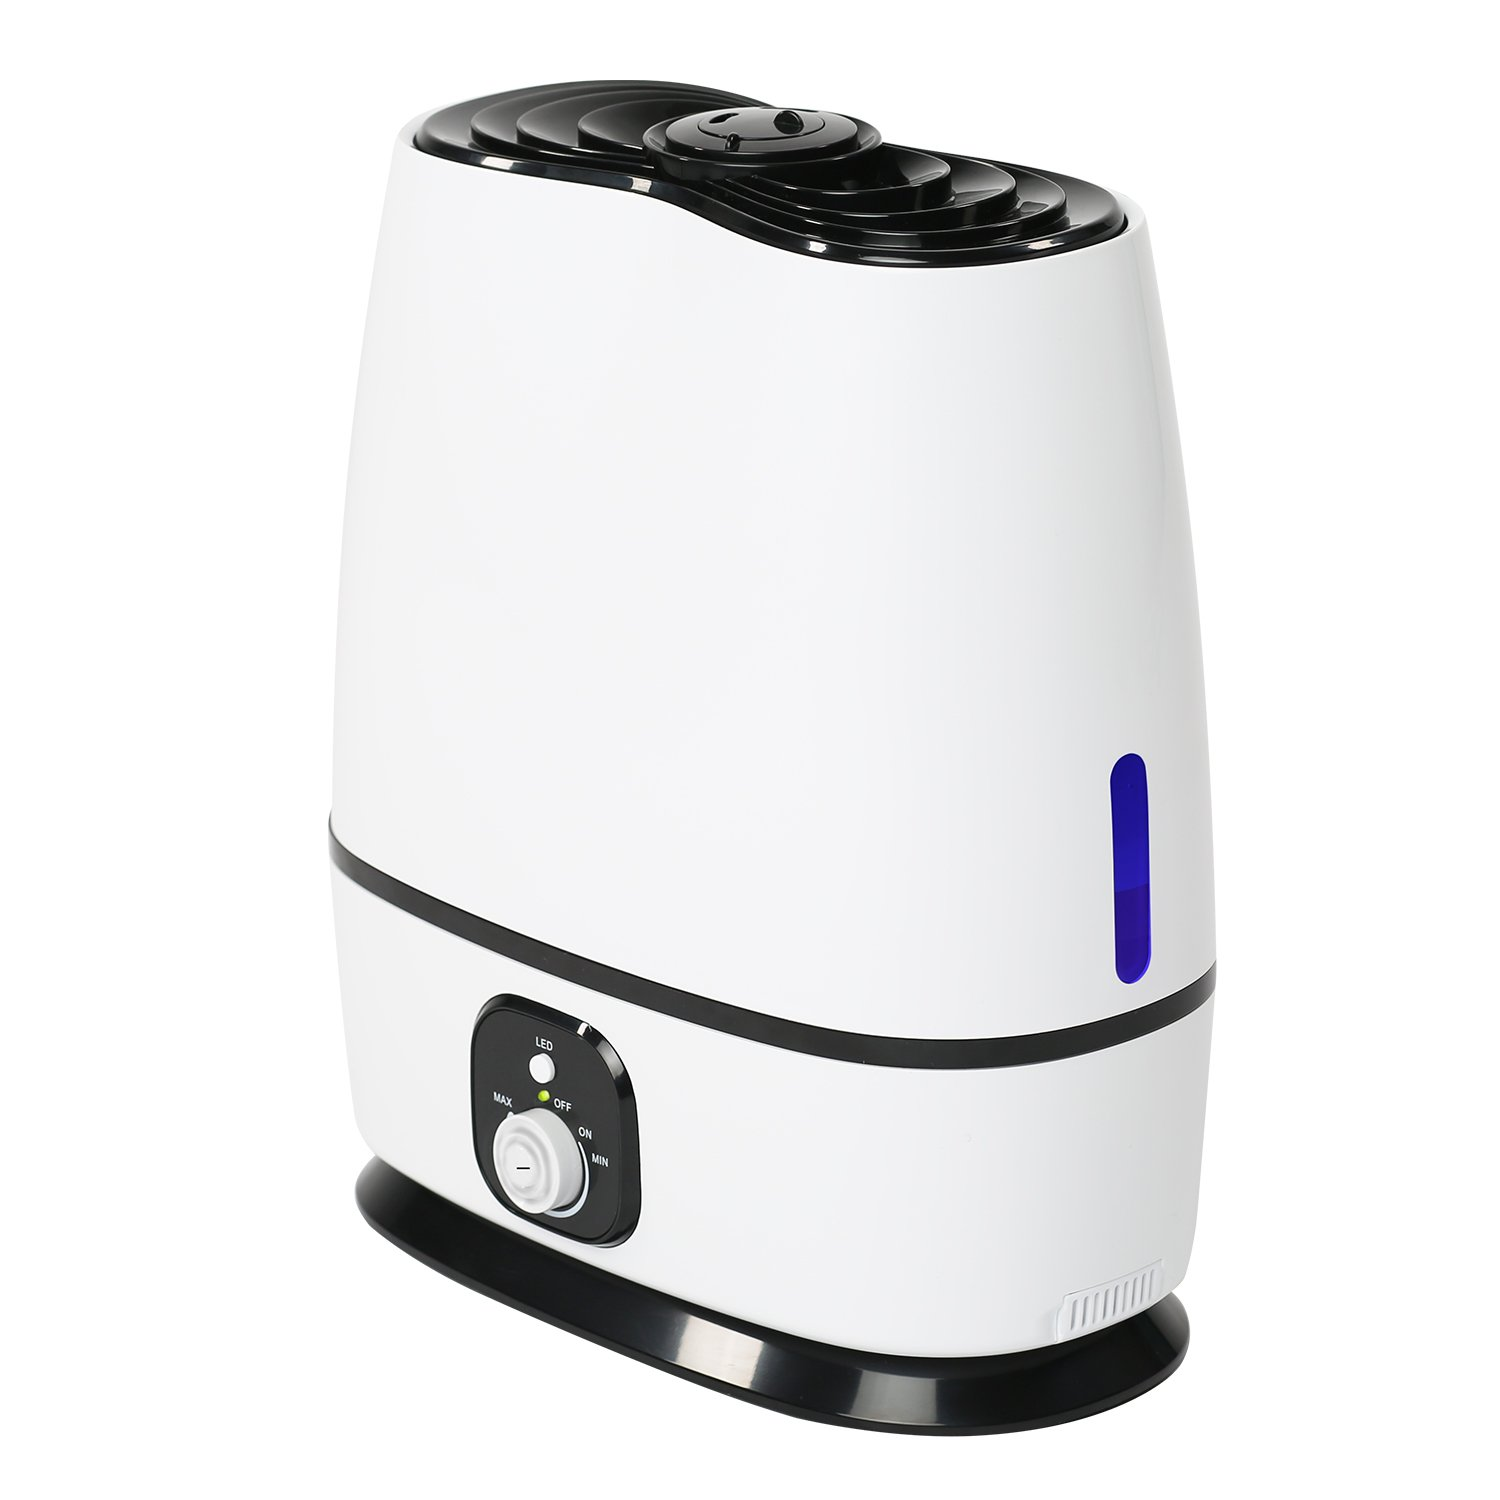 Everlasting Comfort Ultrasonic Humidifier Review